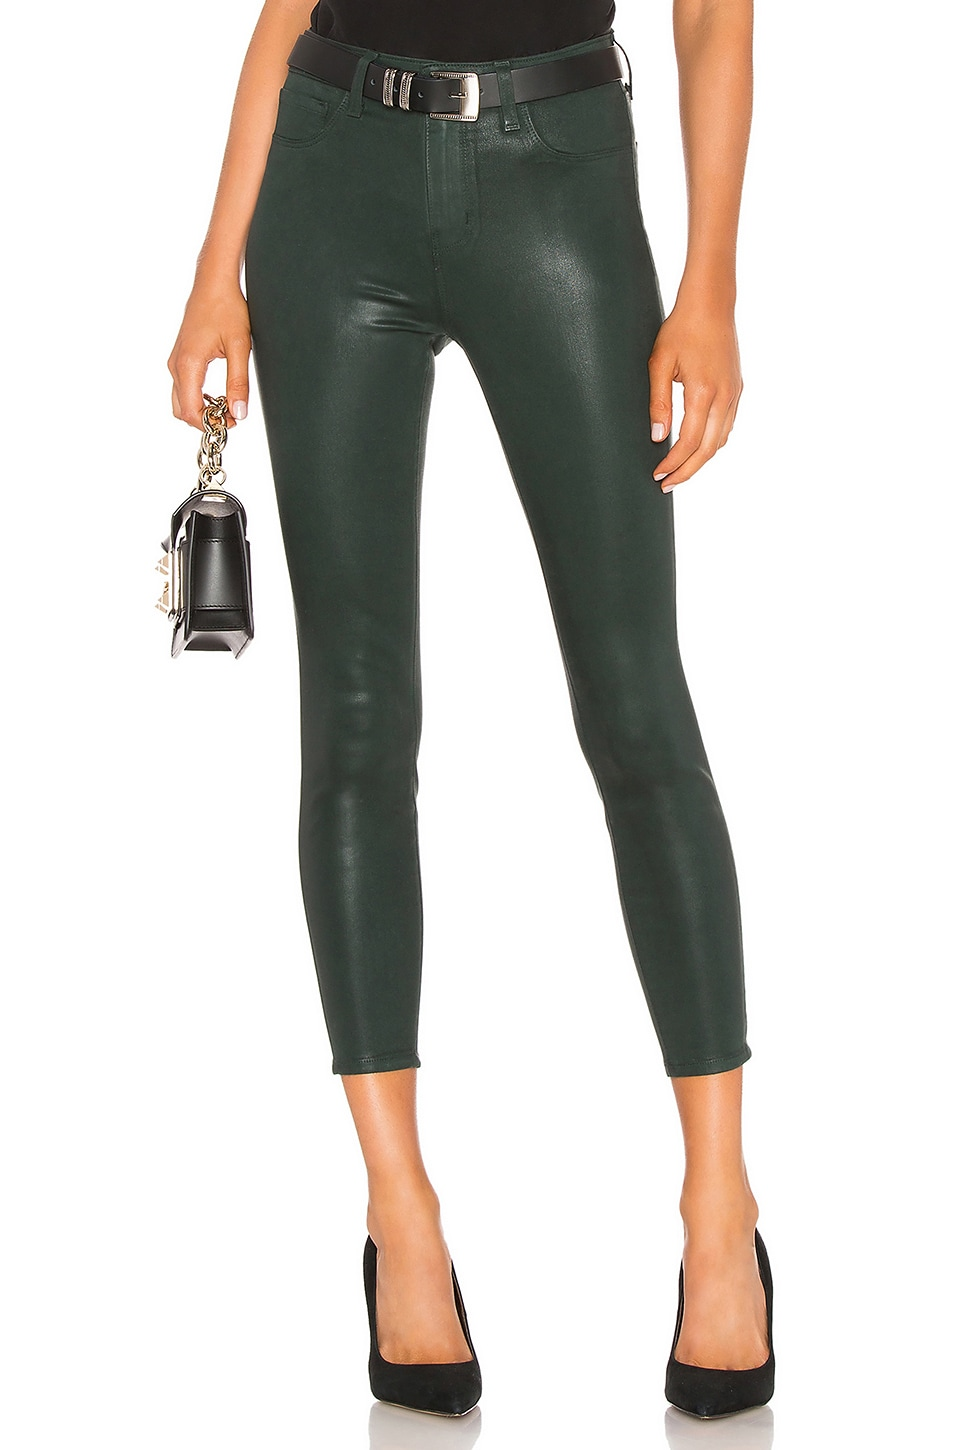 L'AGENCE Margot High Rise Skinny in Evergreen Coated